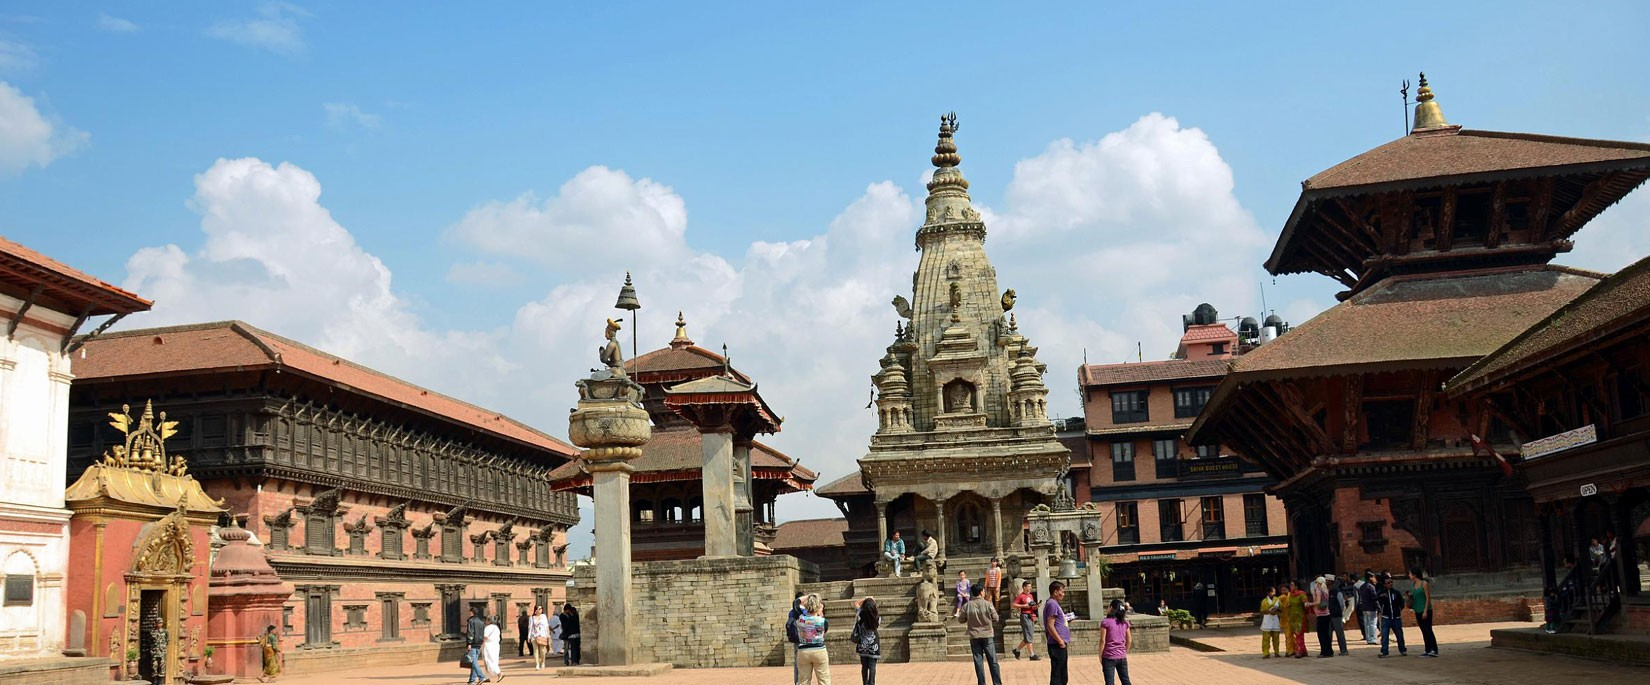 Visiting the Bhaktapur Durbar Square